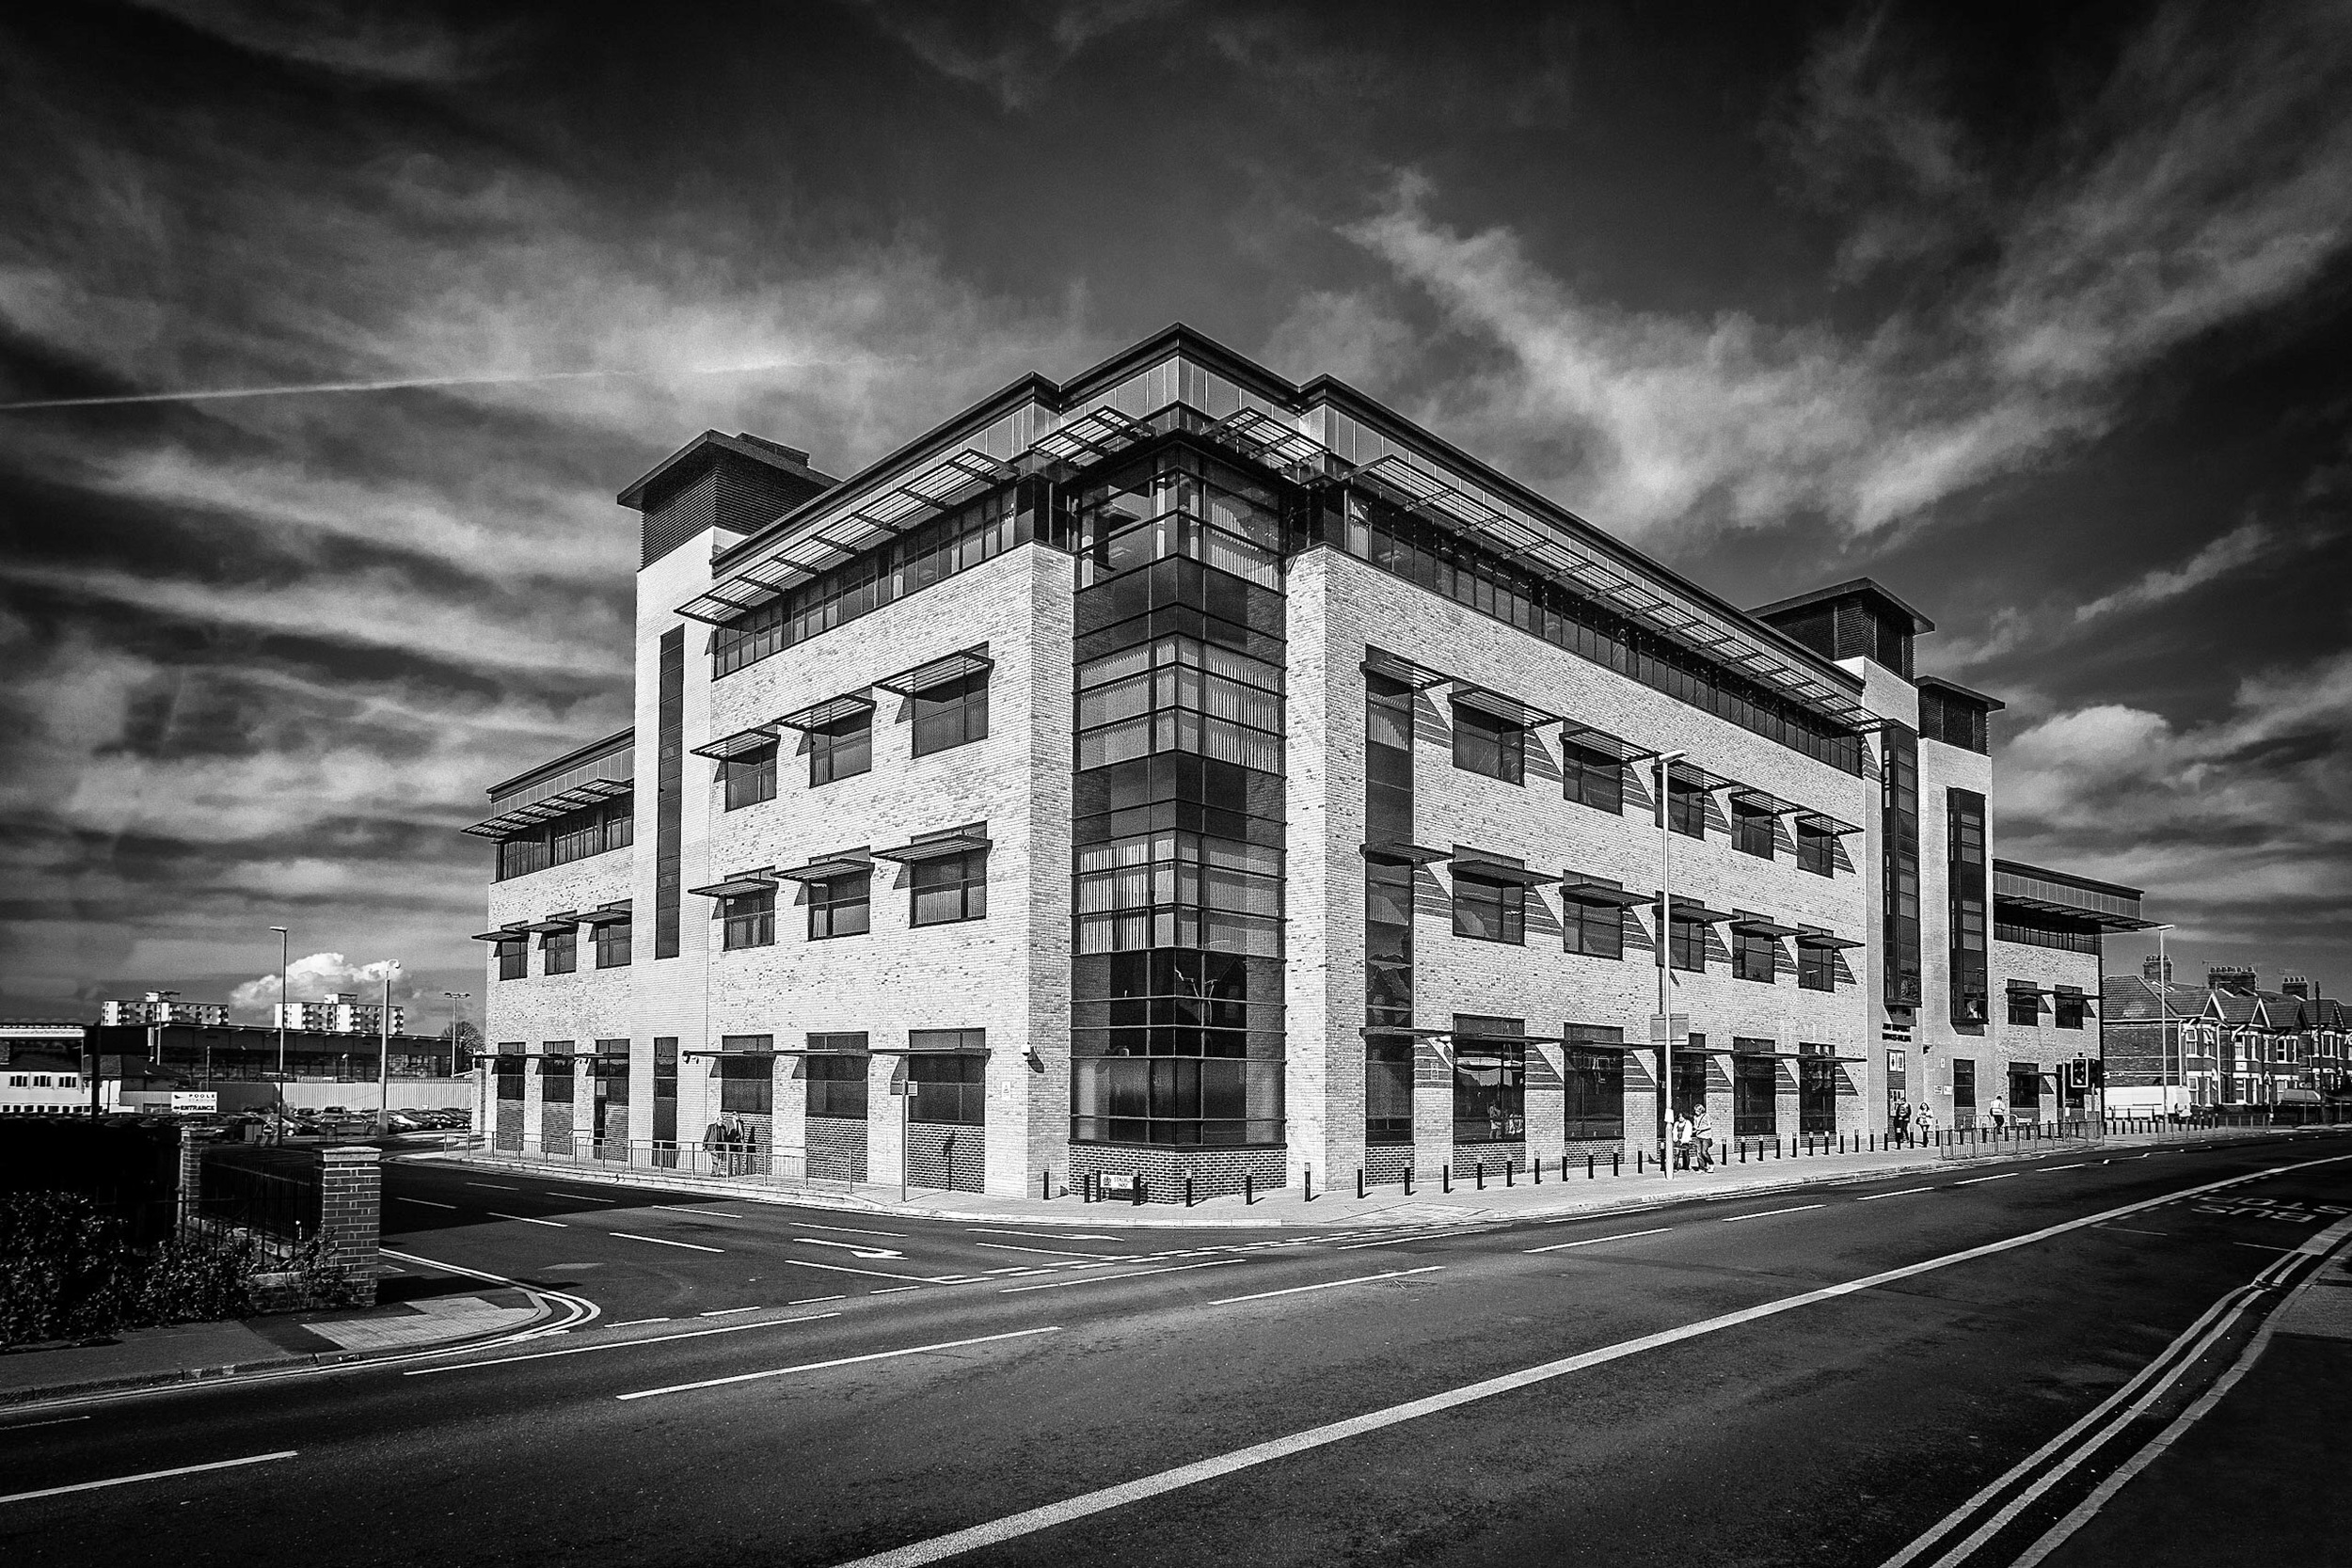 Joint Emergency Services Building, Poole, Dorset - architectrual photography by Rick McEvoy